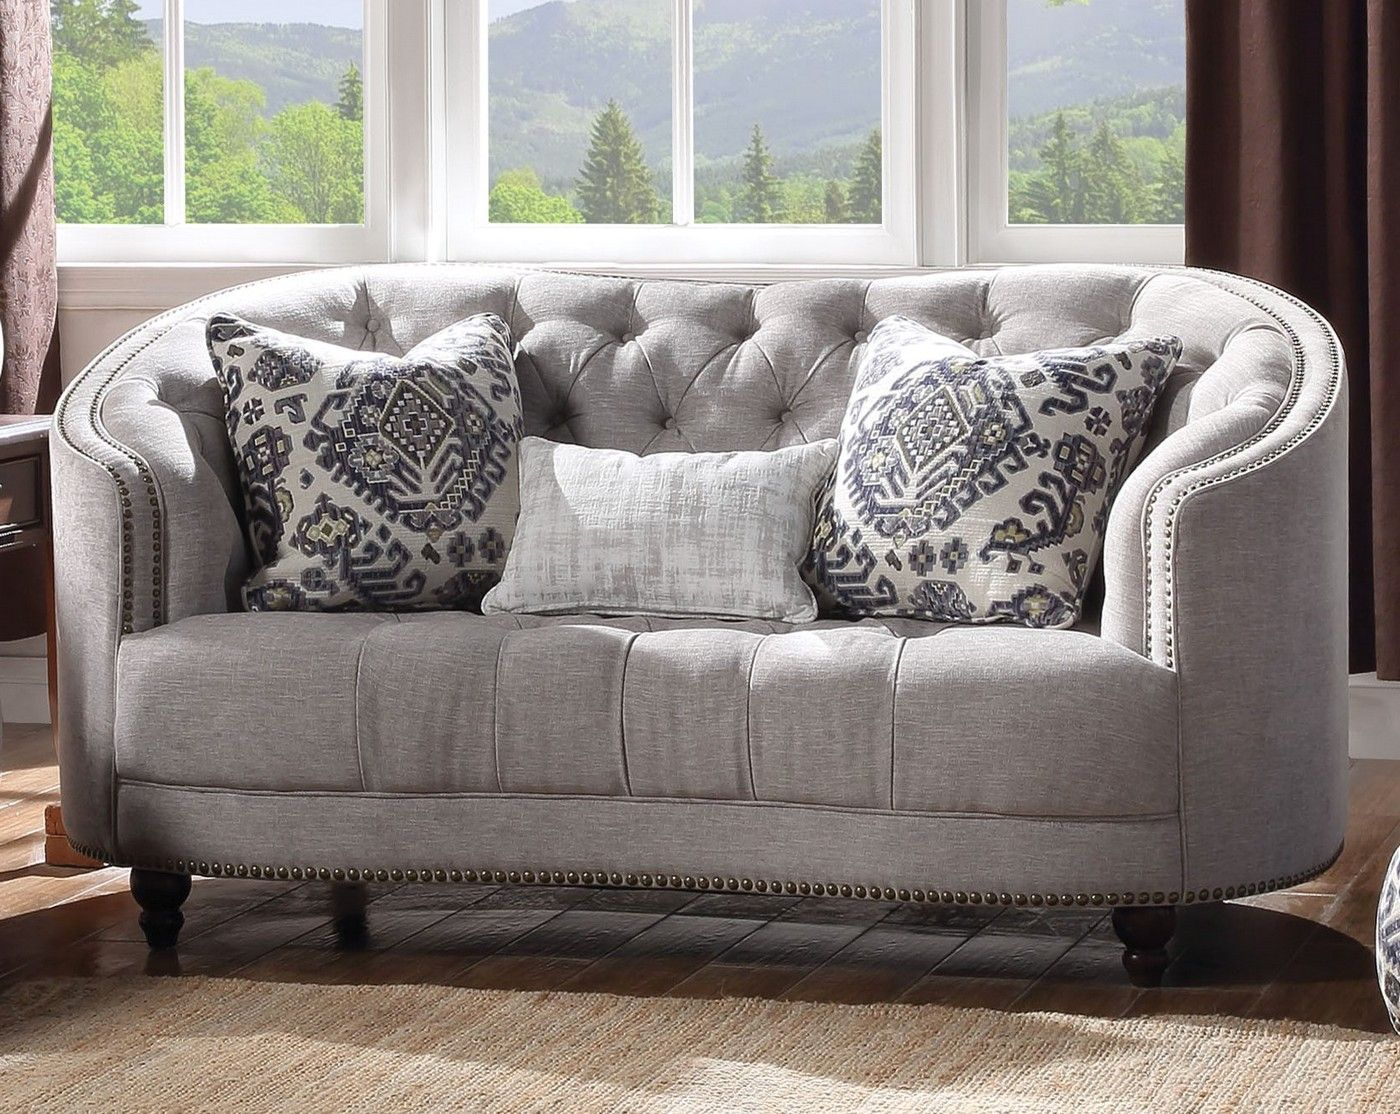 Julia Curved Light Gray Curved Tufted Loveseat With Plush Feather